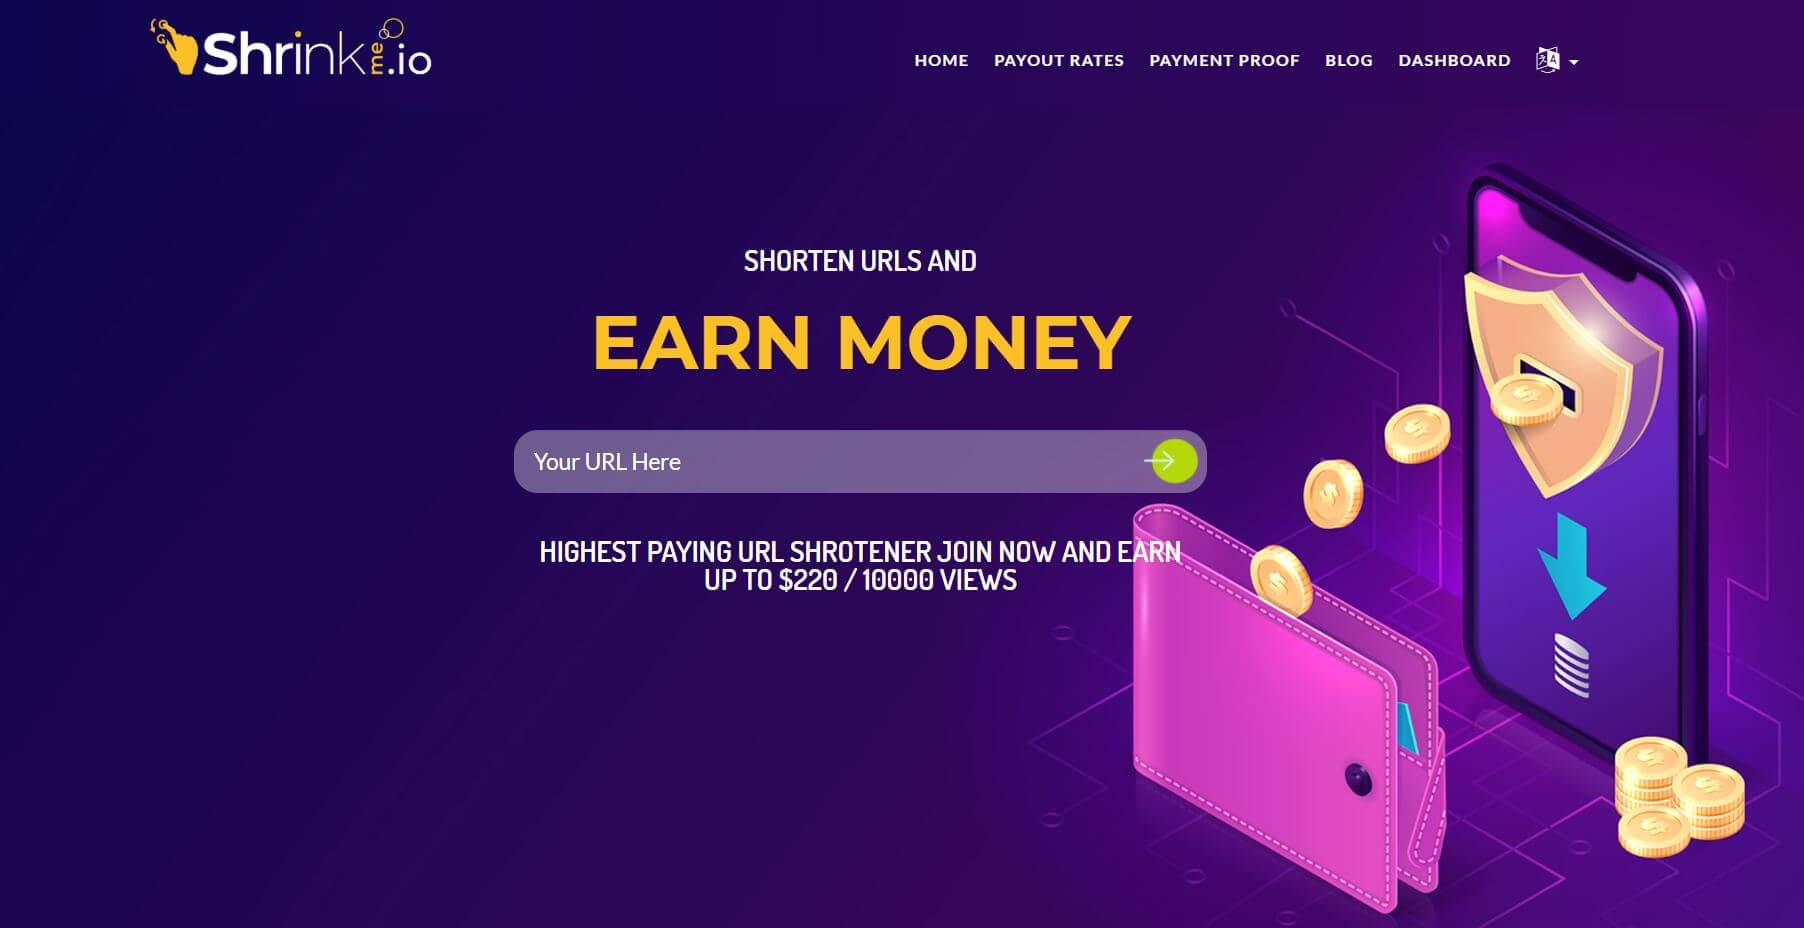 ShrinkMe.io Review – Payment Proof, Payout Rates, Legit or Scam? 1